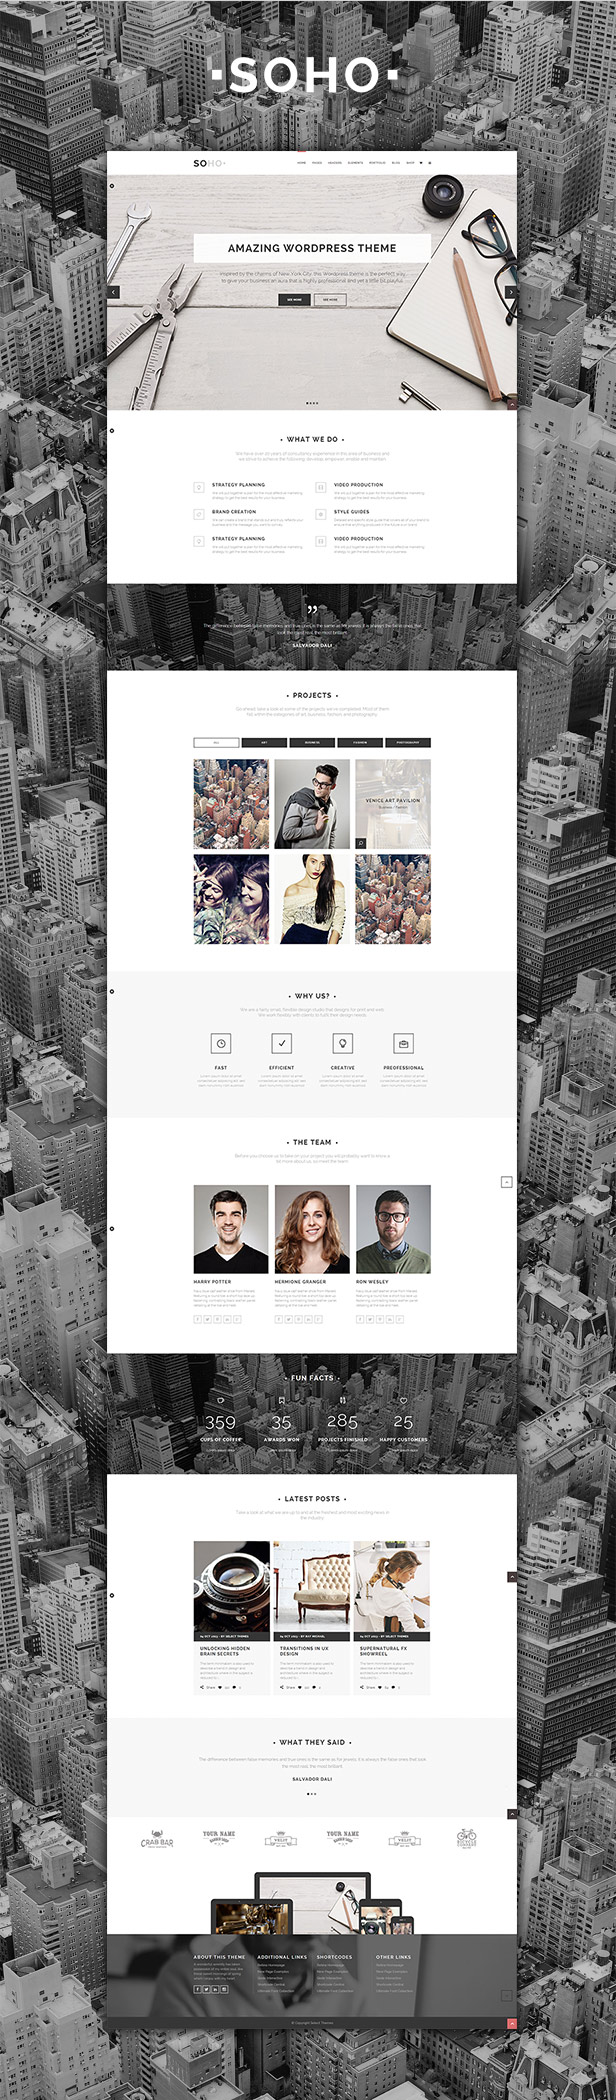 Soho - Clean Multi-Purpose WordPress Theme - 1